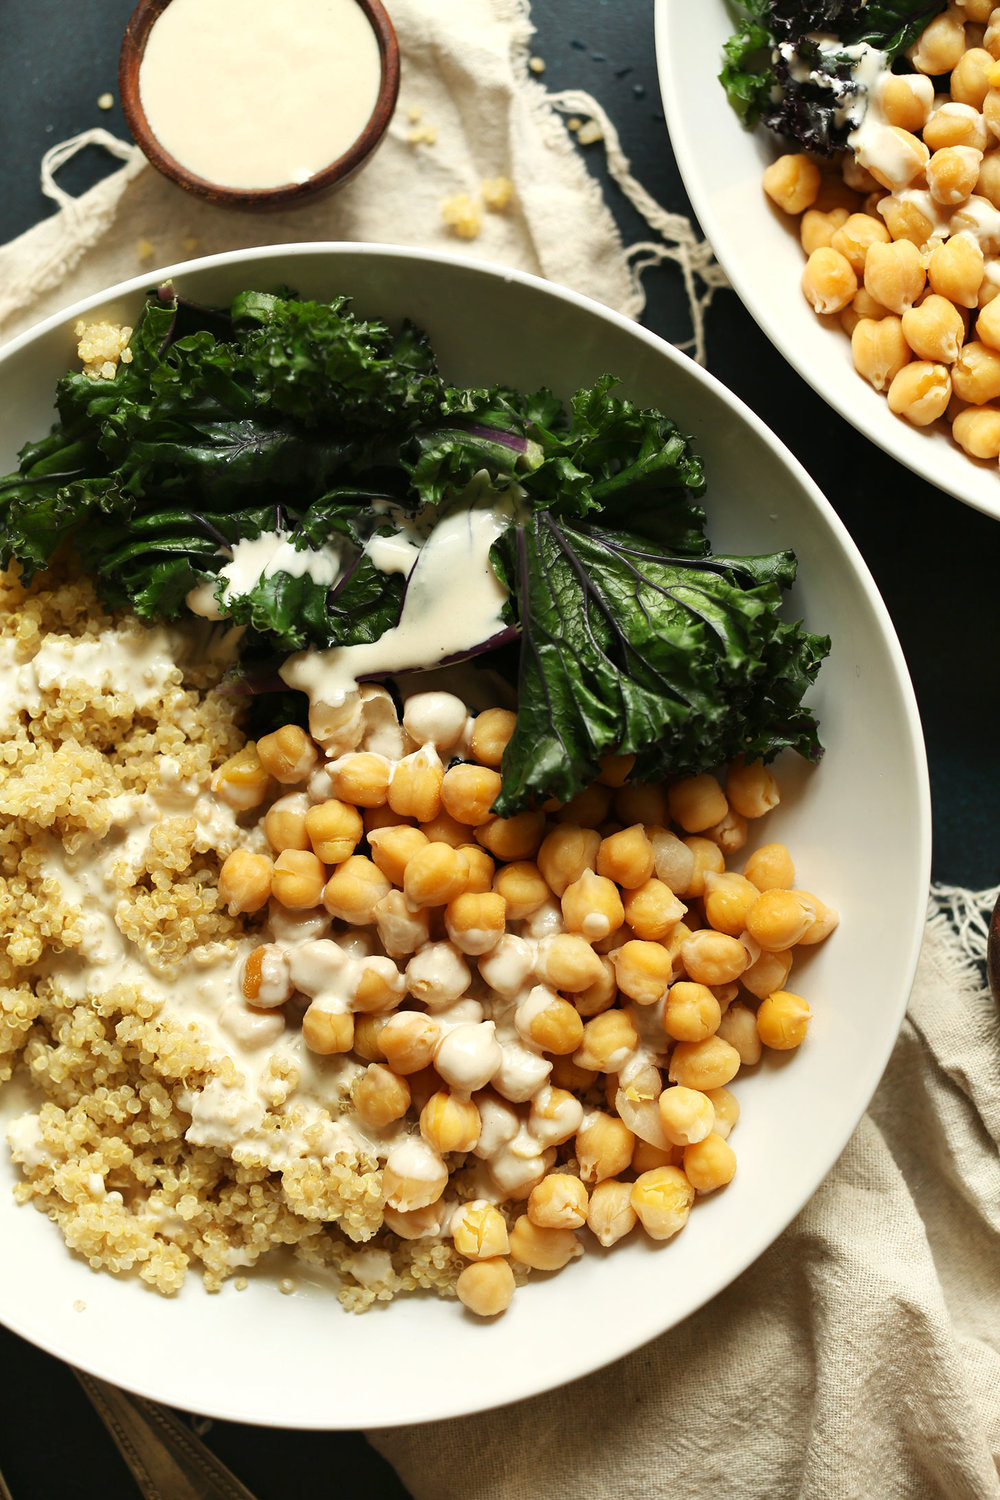 AMAZING-Quinoa-Chickpea-Buddha-Bowls-with-Kale-and-Tahini-Sauce-ONLY-7-ingredients-simple-methods-SO-healthy-vegan-plantbased-glutenfree-buddhabowl-recipe.jpg